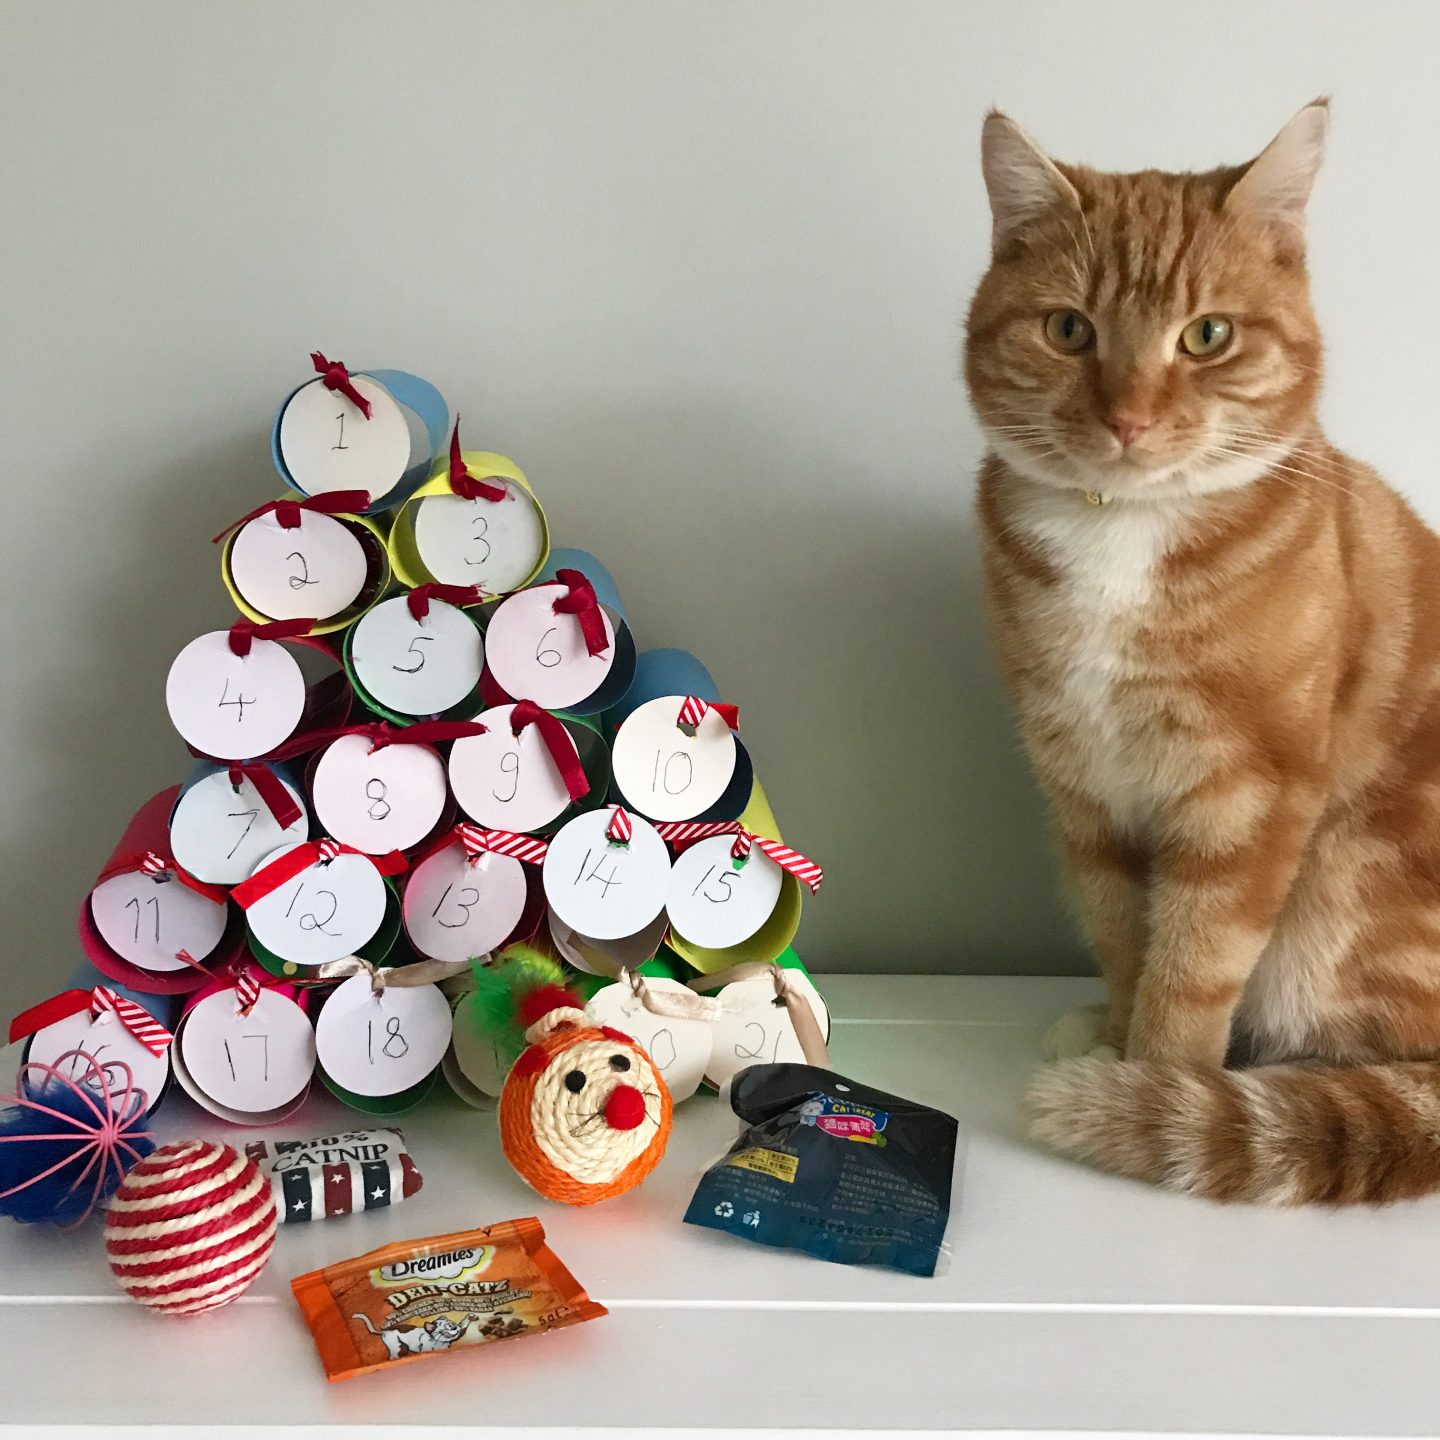 Lady Dinah's Cat Emporium Advent Calendar